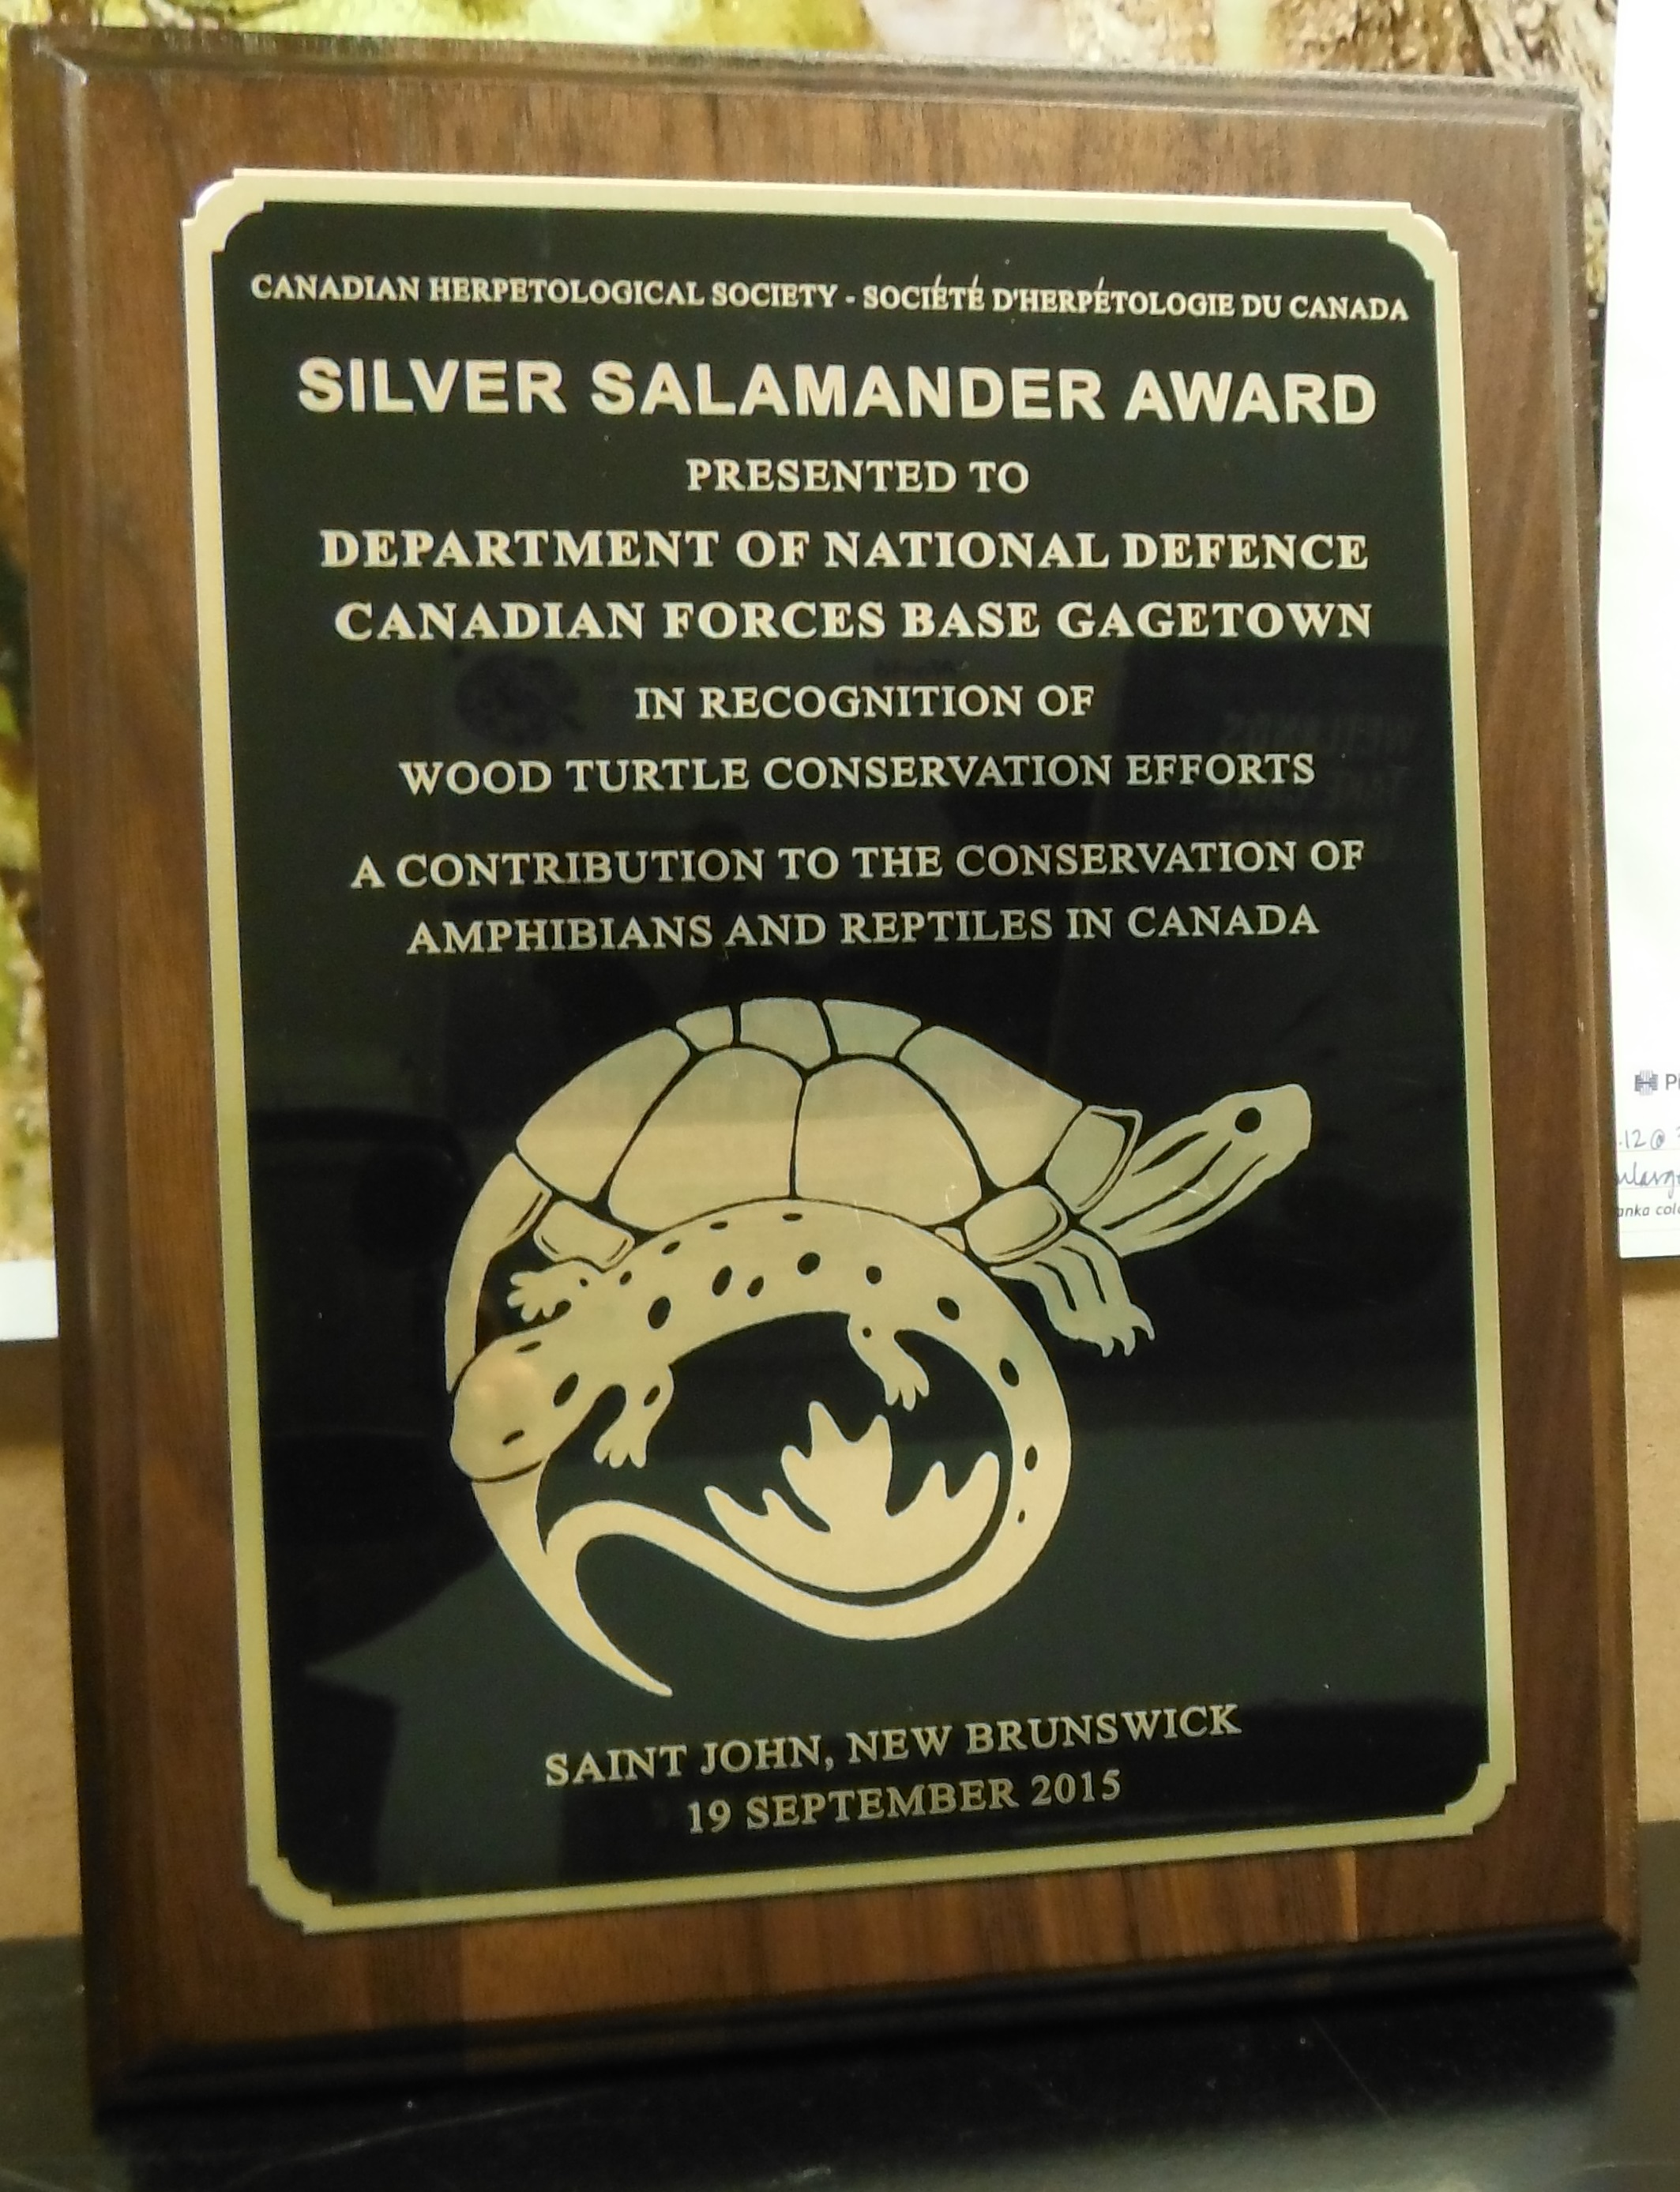 The Silver Salamander Award was presented in St. John, New Brunswick by the Canadian Herpetological Society to the Department of National Defence's 5th Canadian Division Support Base Gagetown in recognition of Wood Turtle conservation efforts on September 19, 2015. Only two such awards are awarded annually in Canada. Photo by: Joe Crowley.